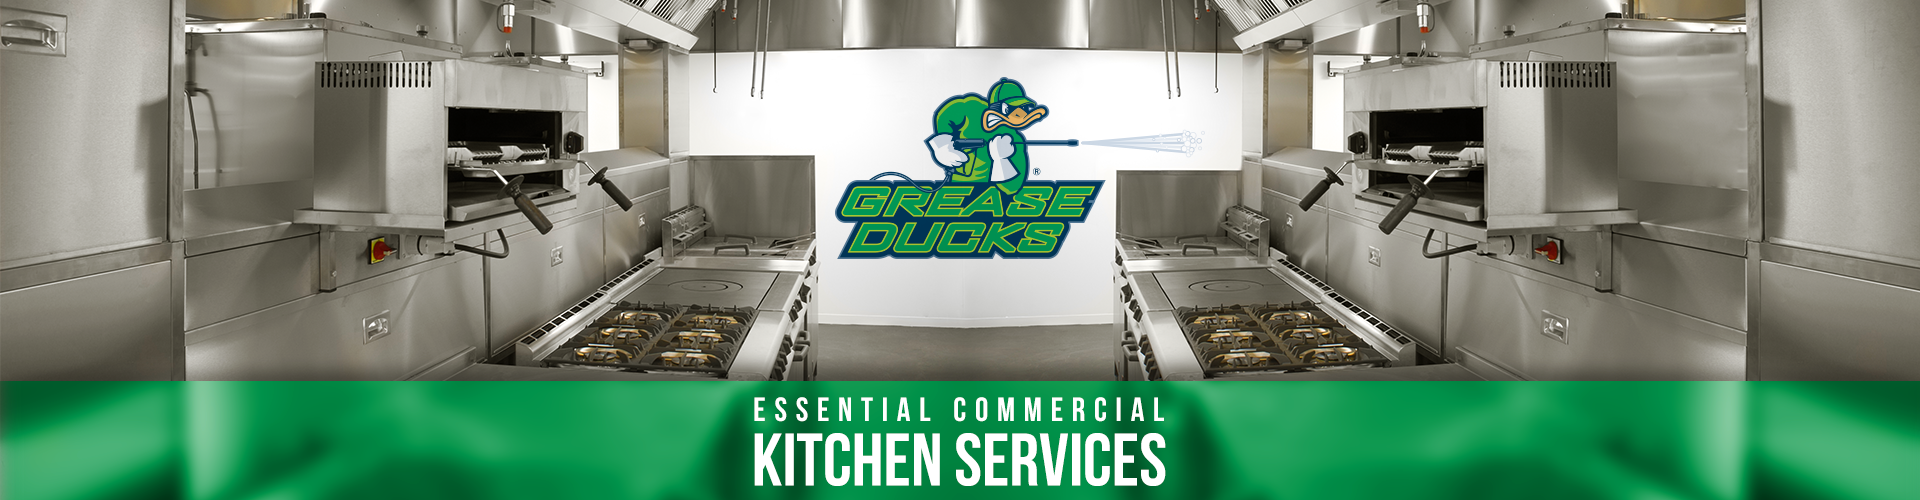 Grease Ducks Essential Commercial Kitchen Services